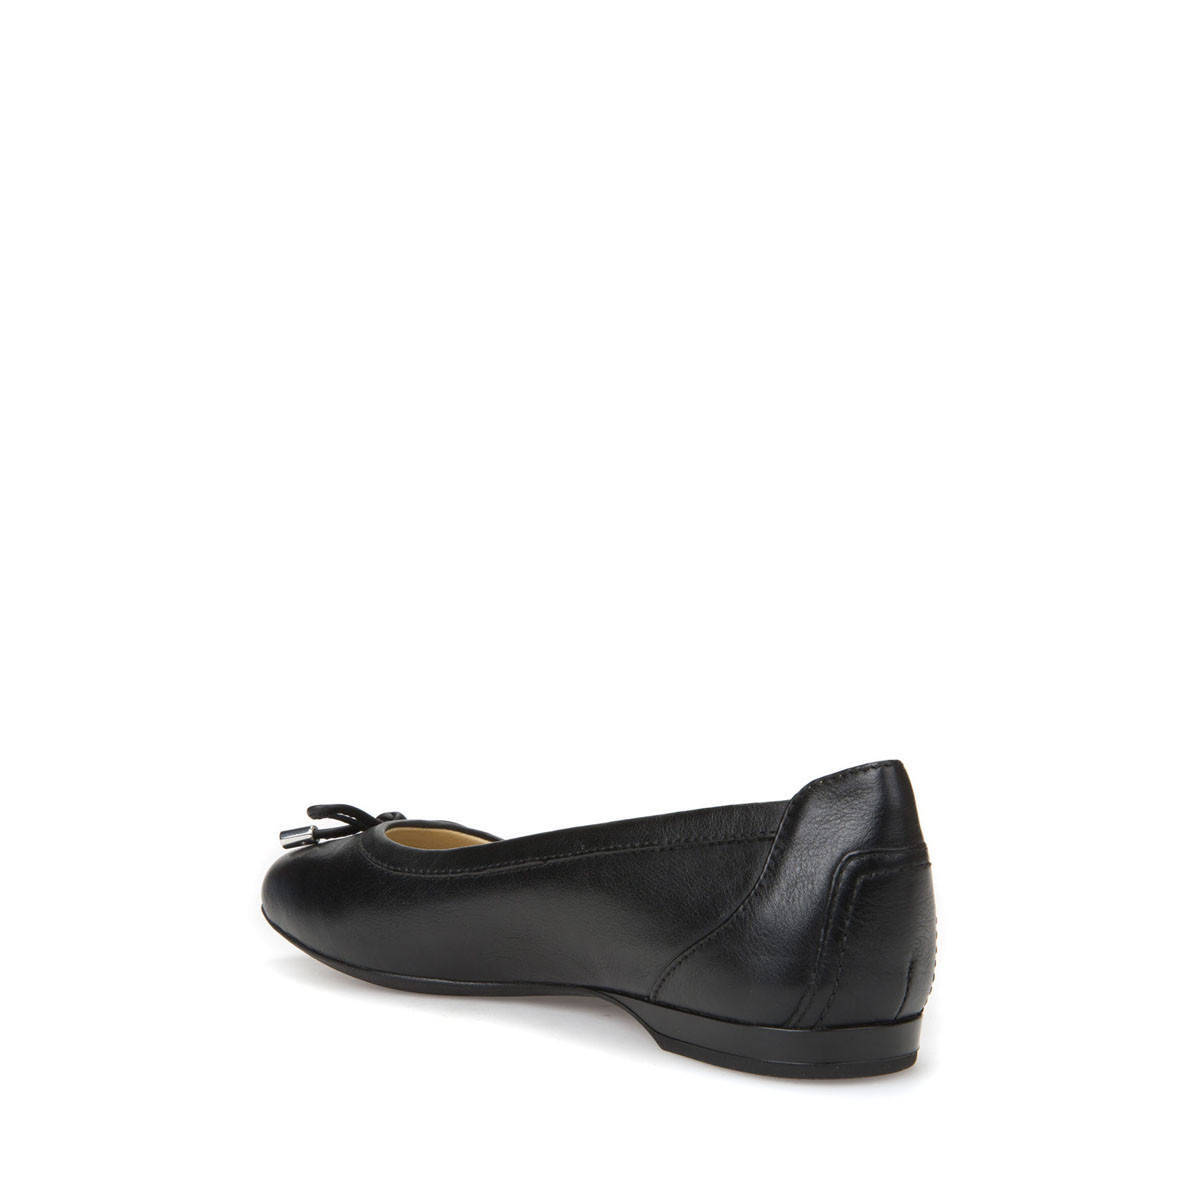 GEOX Women's Women's Women's flat shoes leather black with bow D825DD linea LAMULAY d71c72